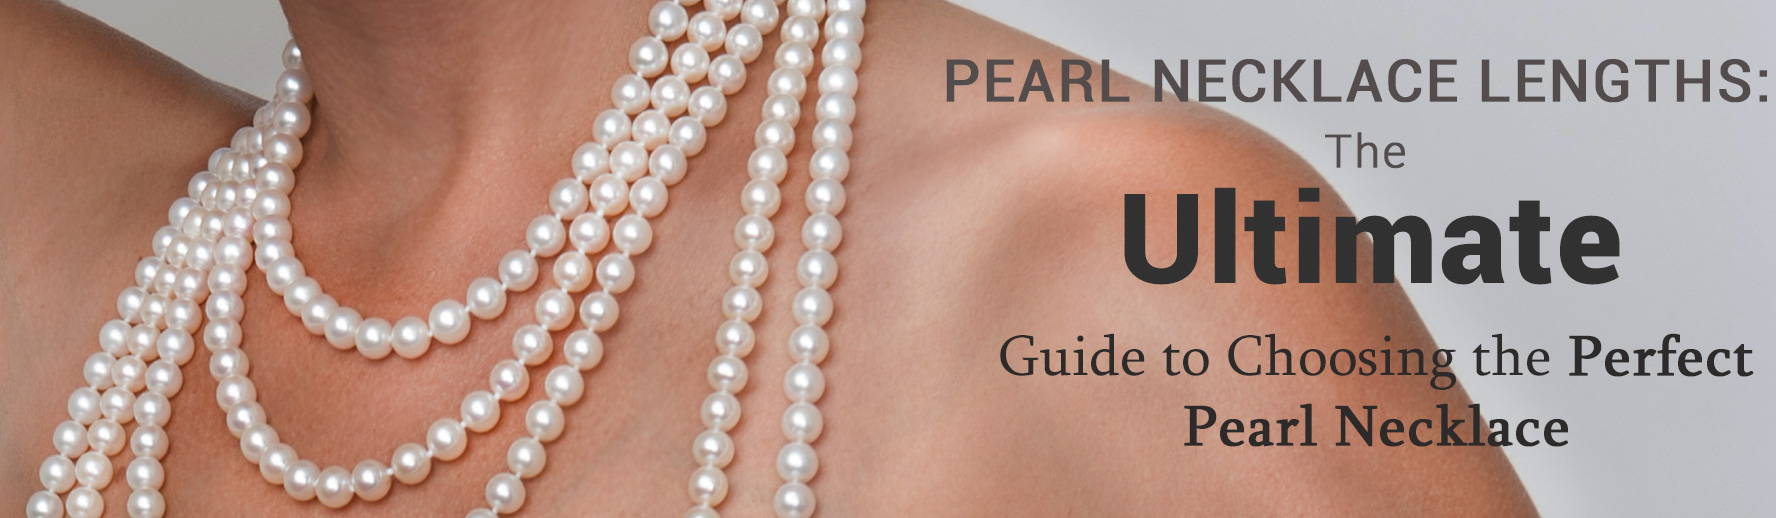 Pearl Necklace Lengths: The Ultimate Guide to Choosing the Perfect Pearl Necklace